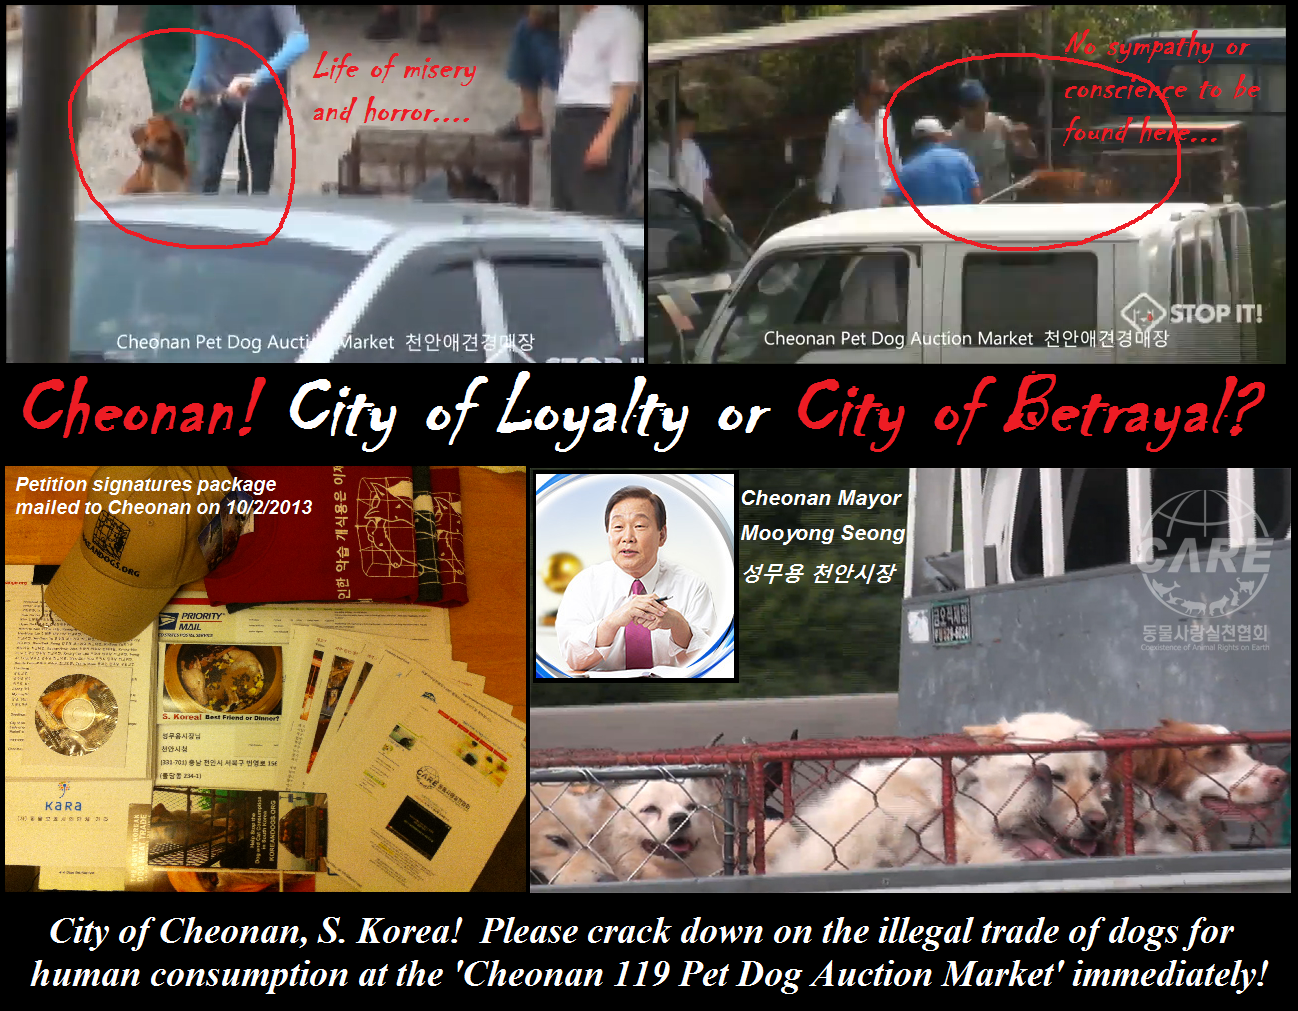 Please crack down on the illegal trade of dogs for human consumption at the